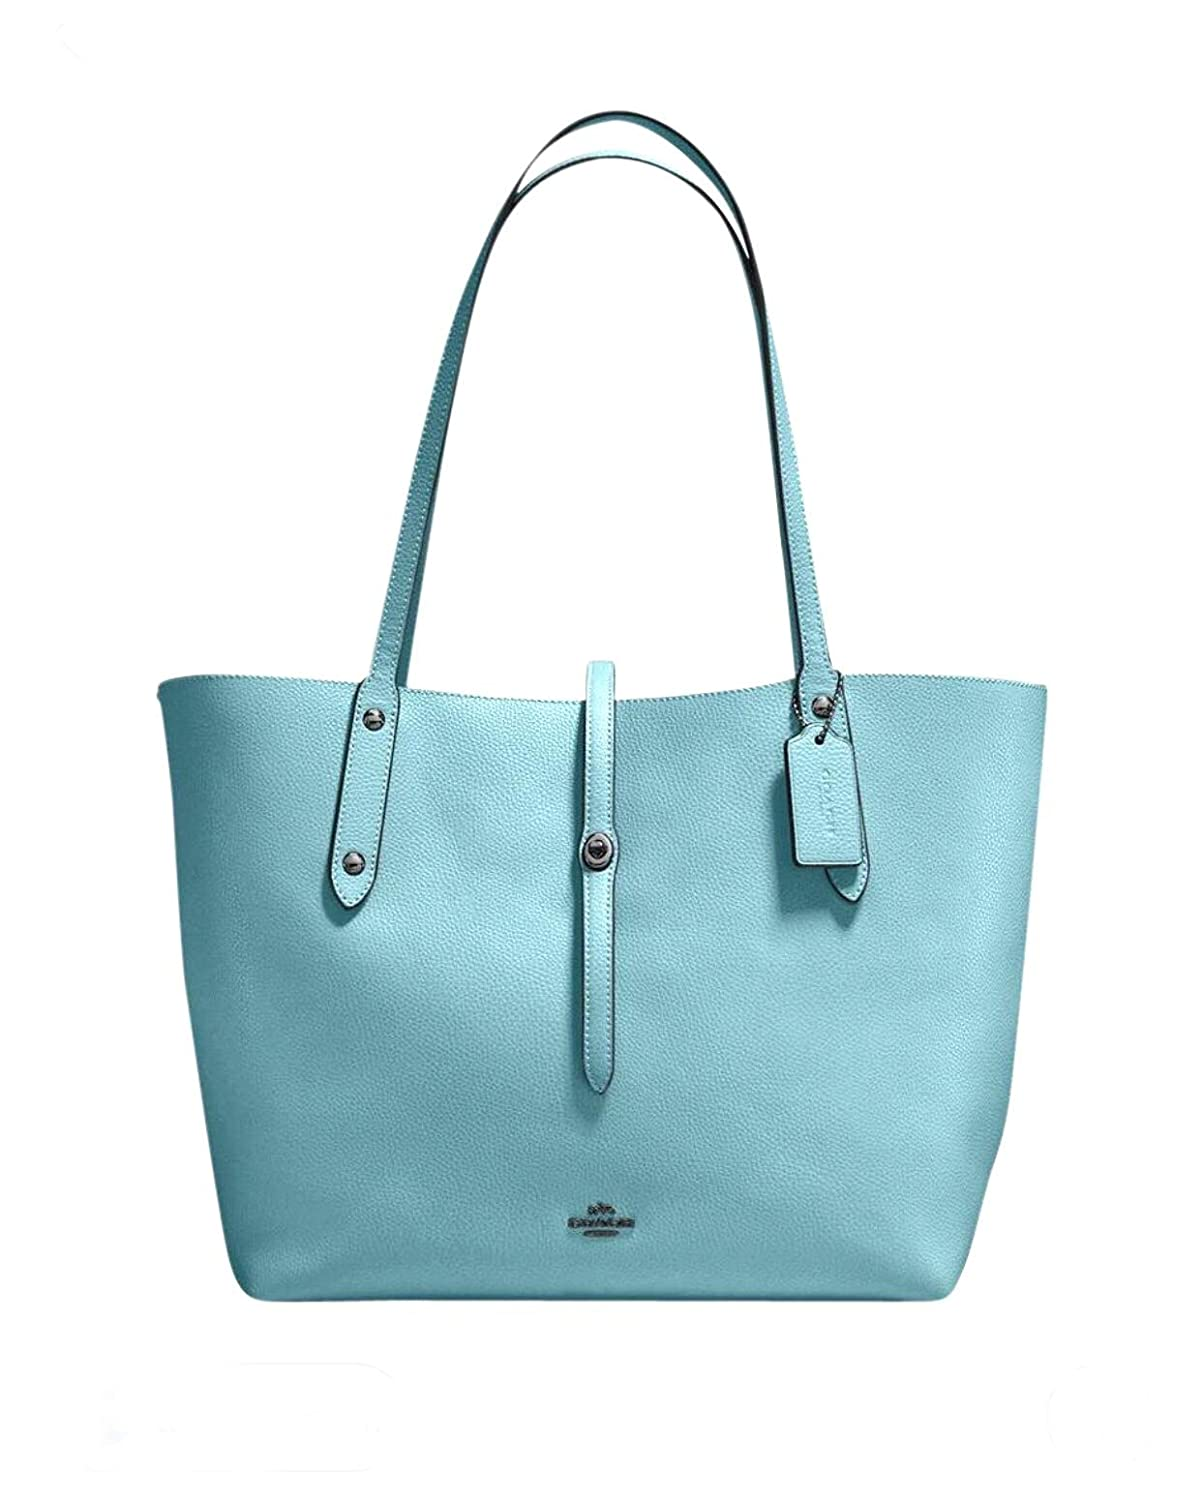 7de71ff6d869 Amazon.com  Coach Market Tote bag in DK Cloud Mineral  Shoes